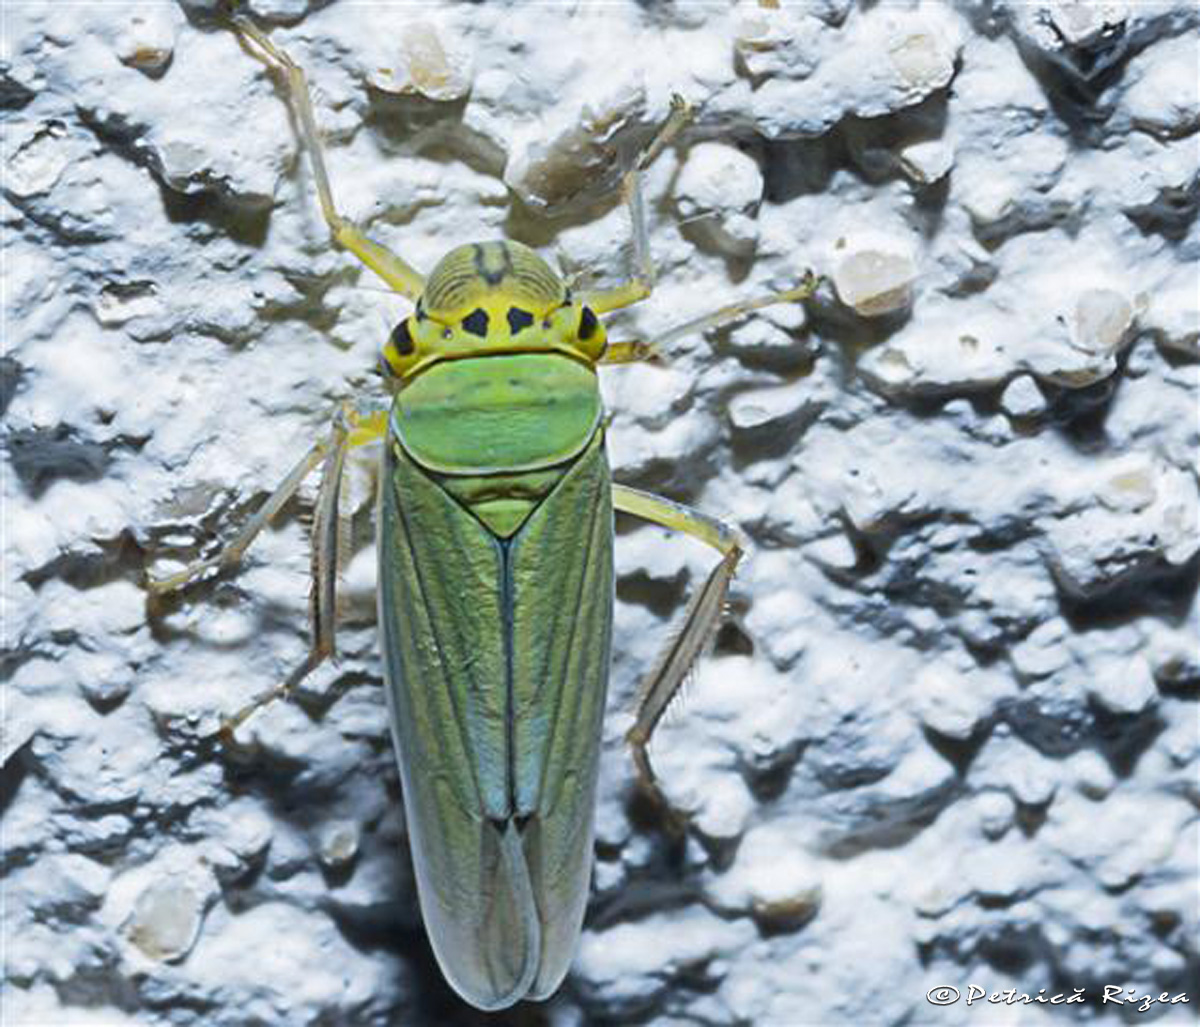 Cicadella viridis, the 'Green Leafhoppers